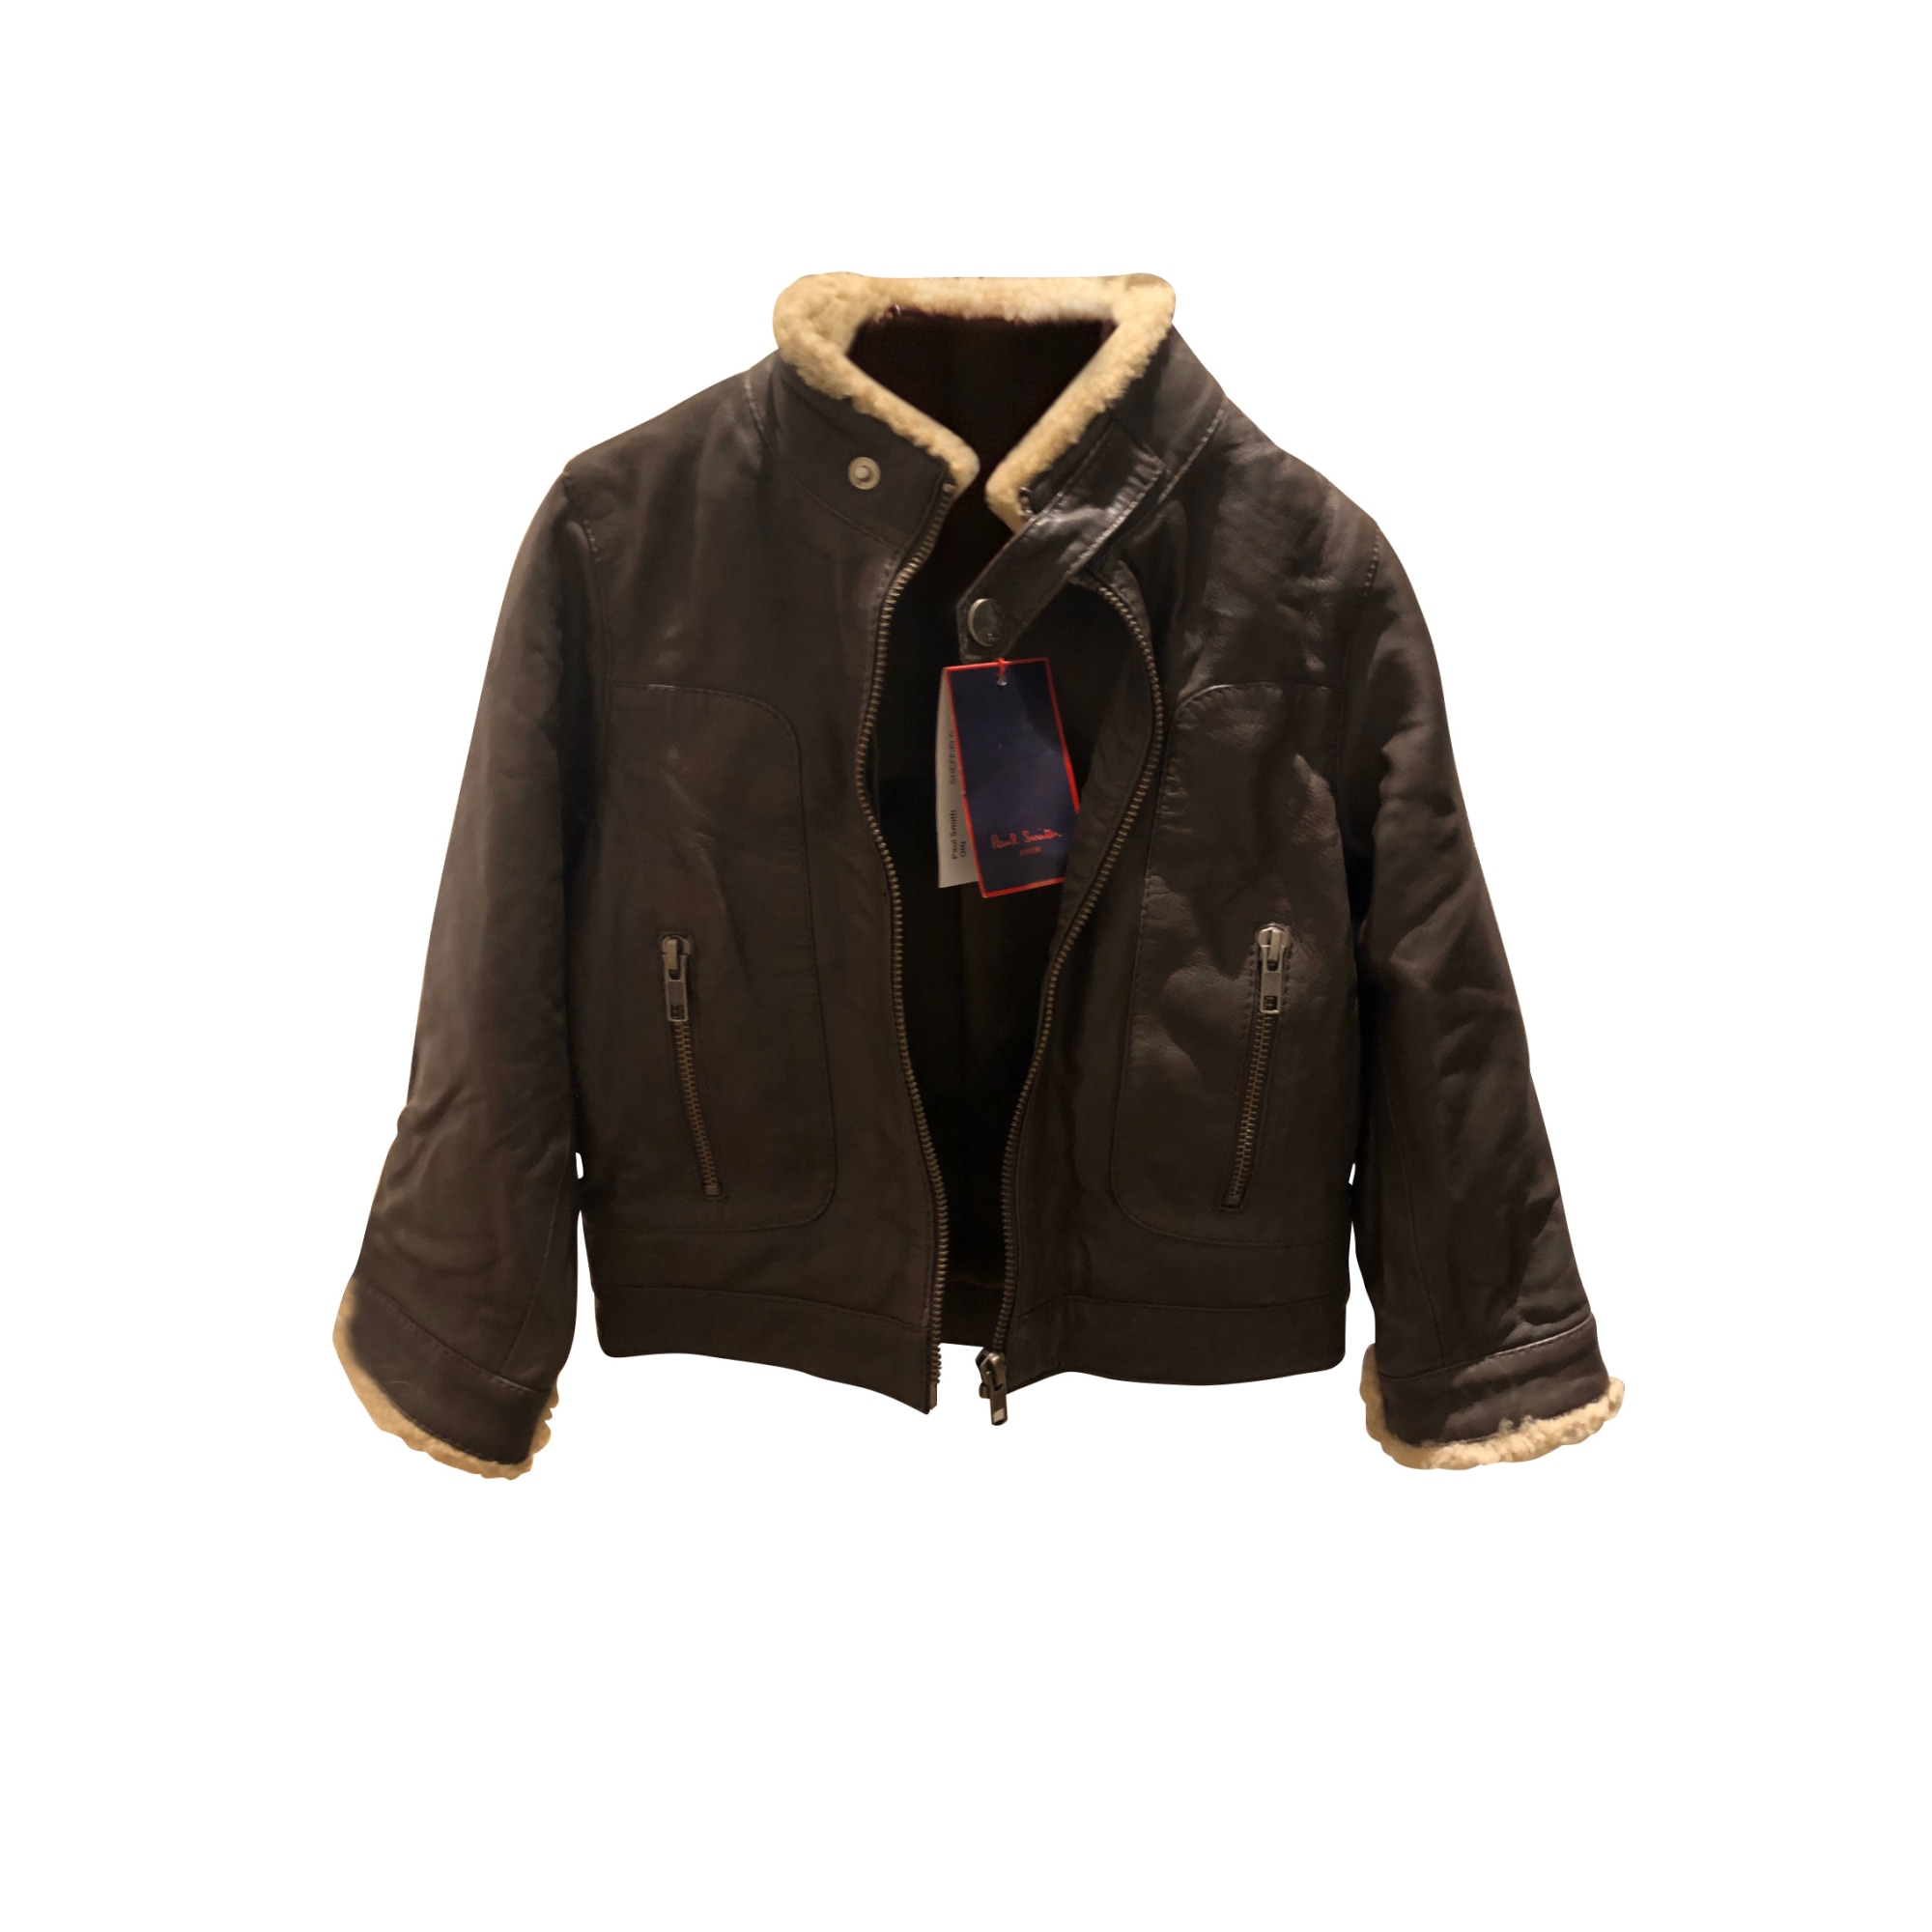 Veste PAUL SMITH Marron